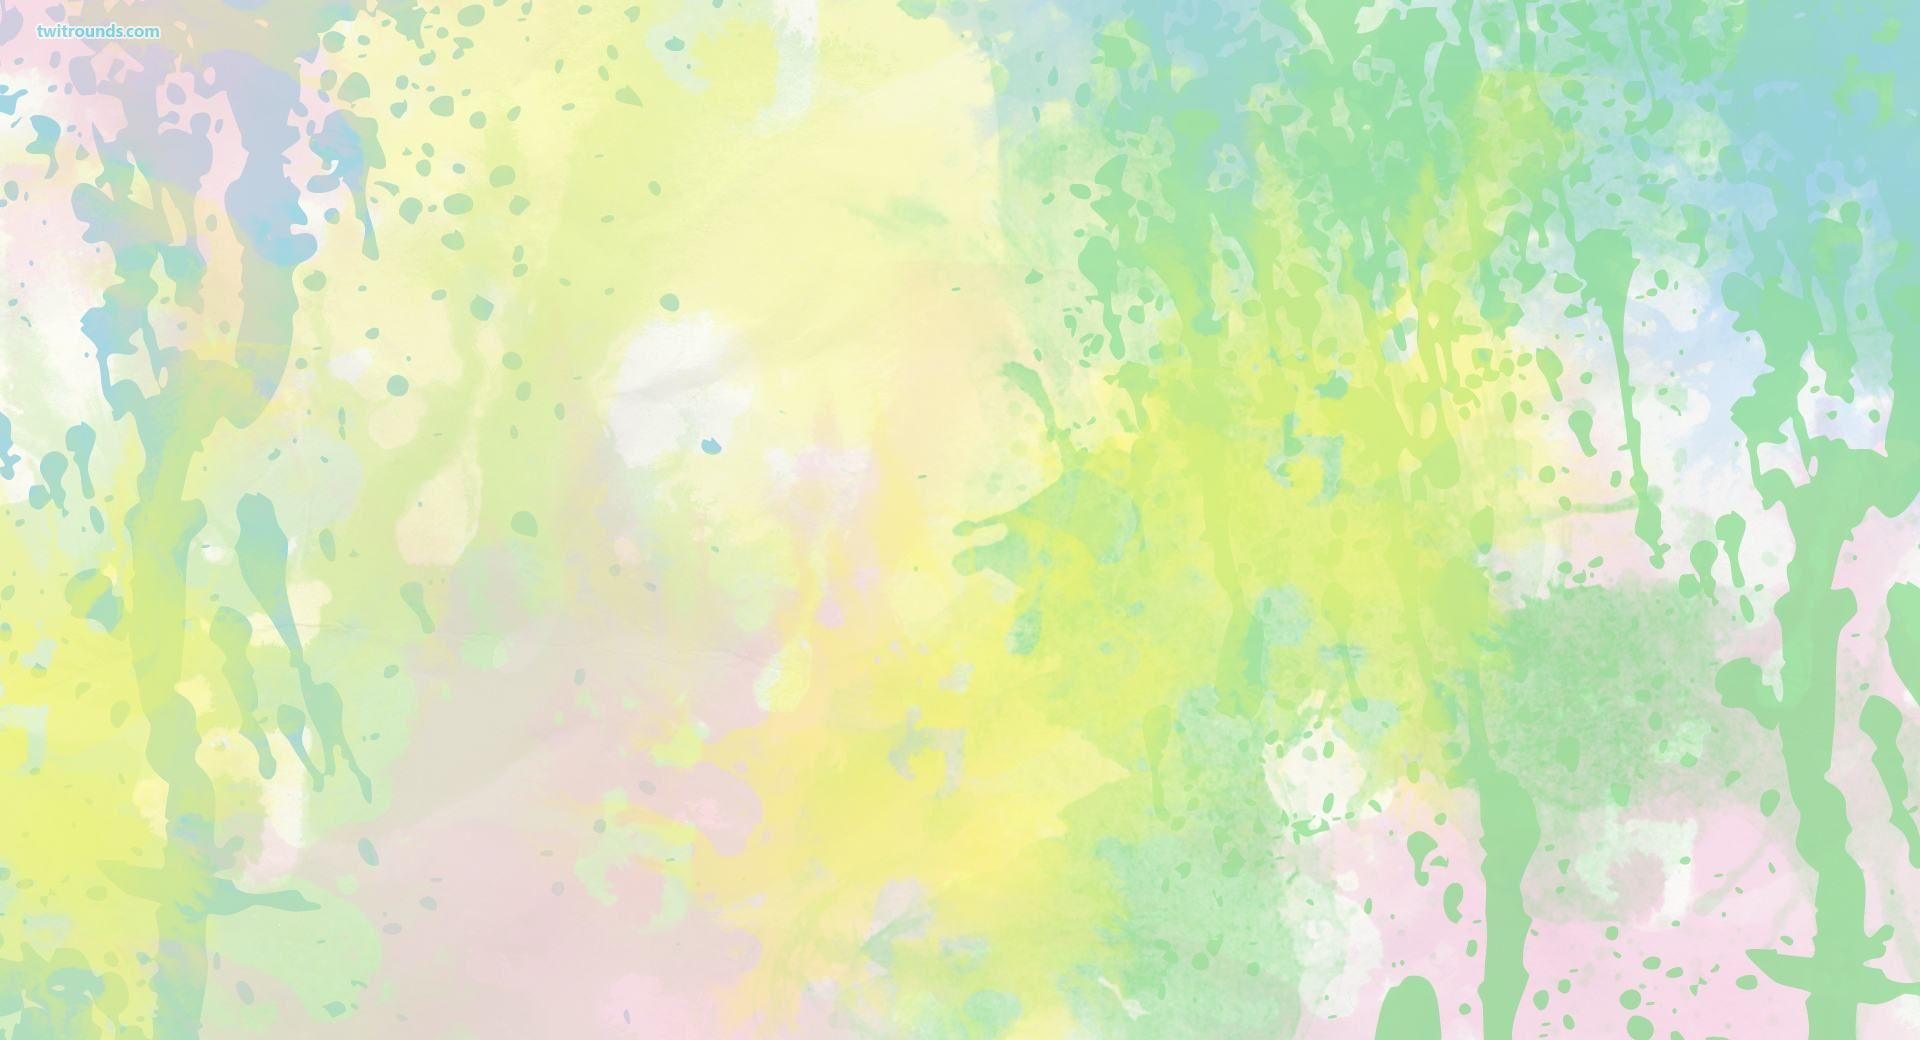 Abstract Watercolor Wallpaper in Photoshop  10StepsSG